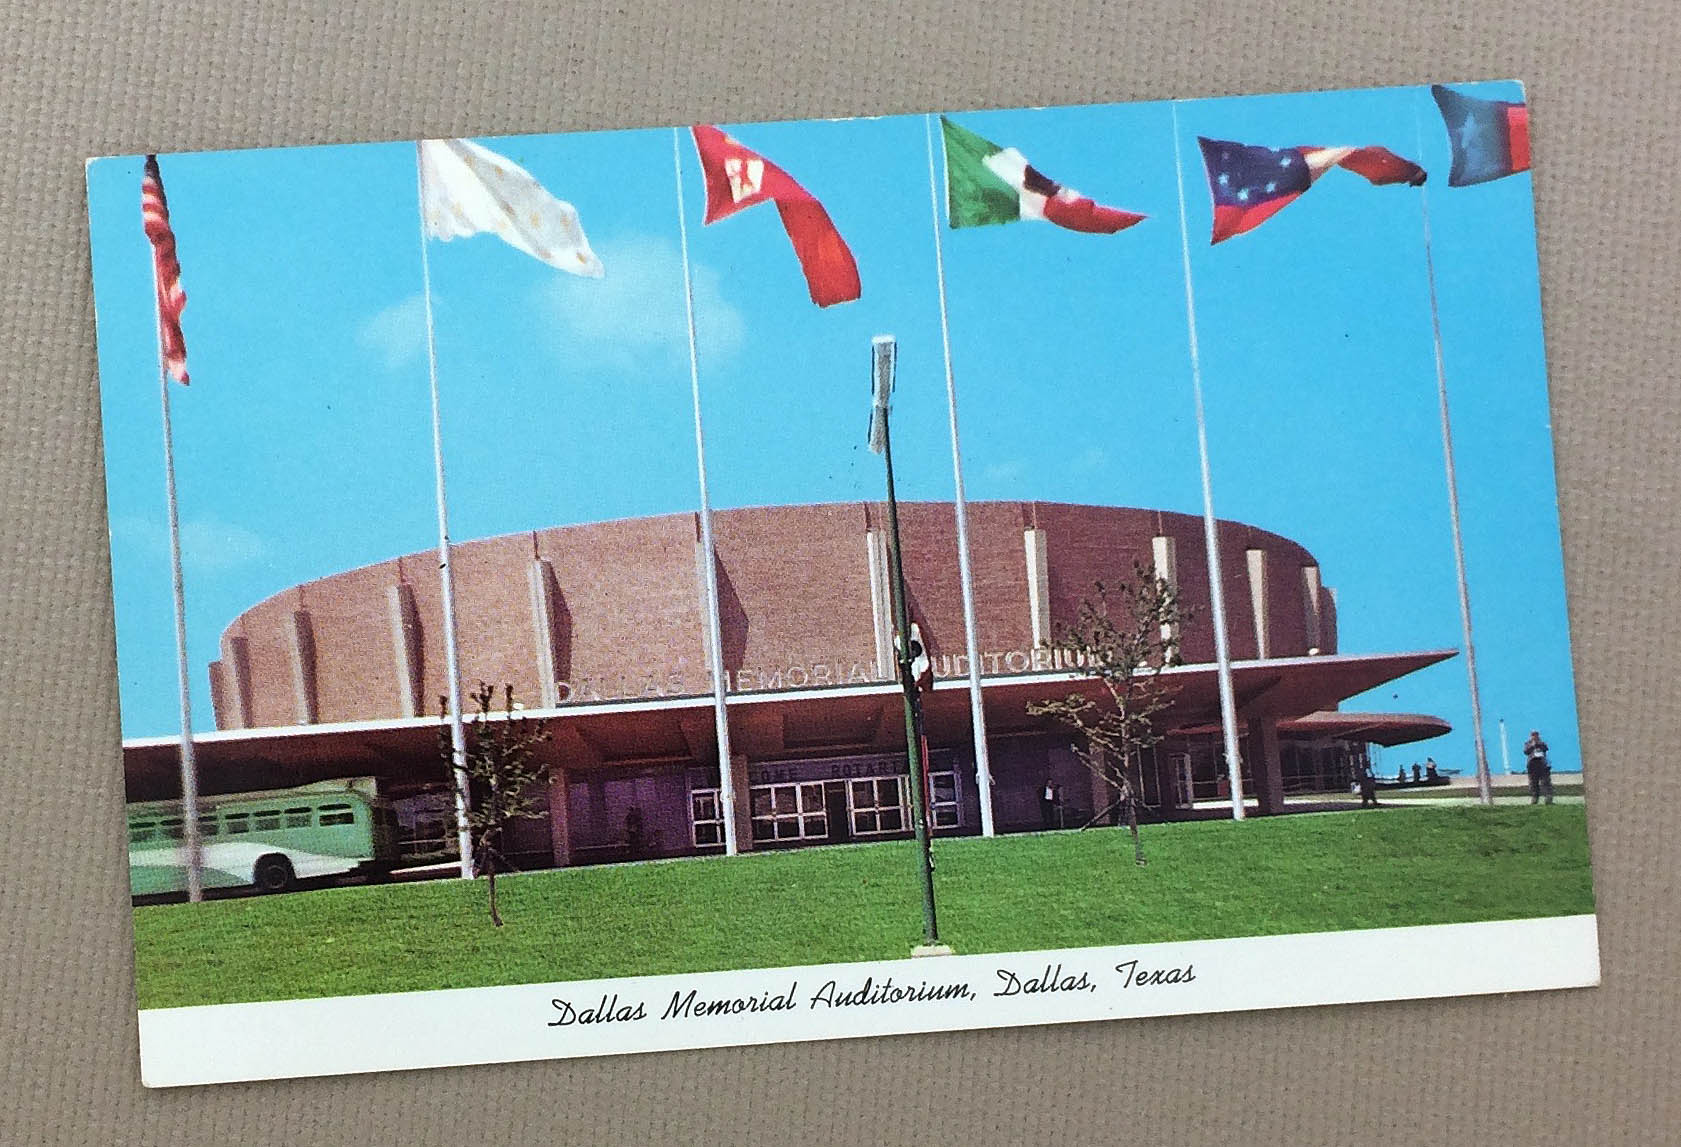 Dallas Memorial Auditorium